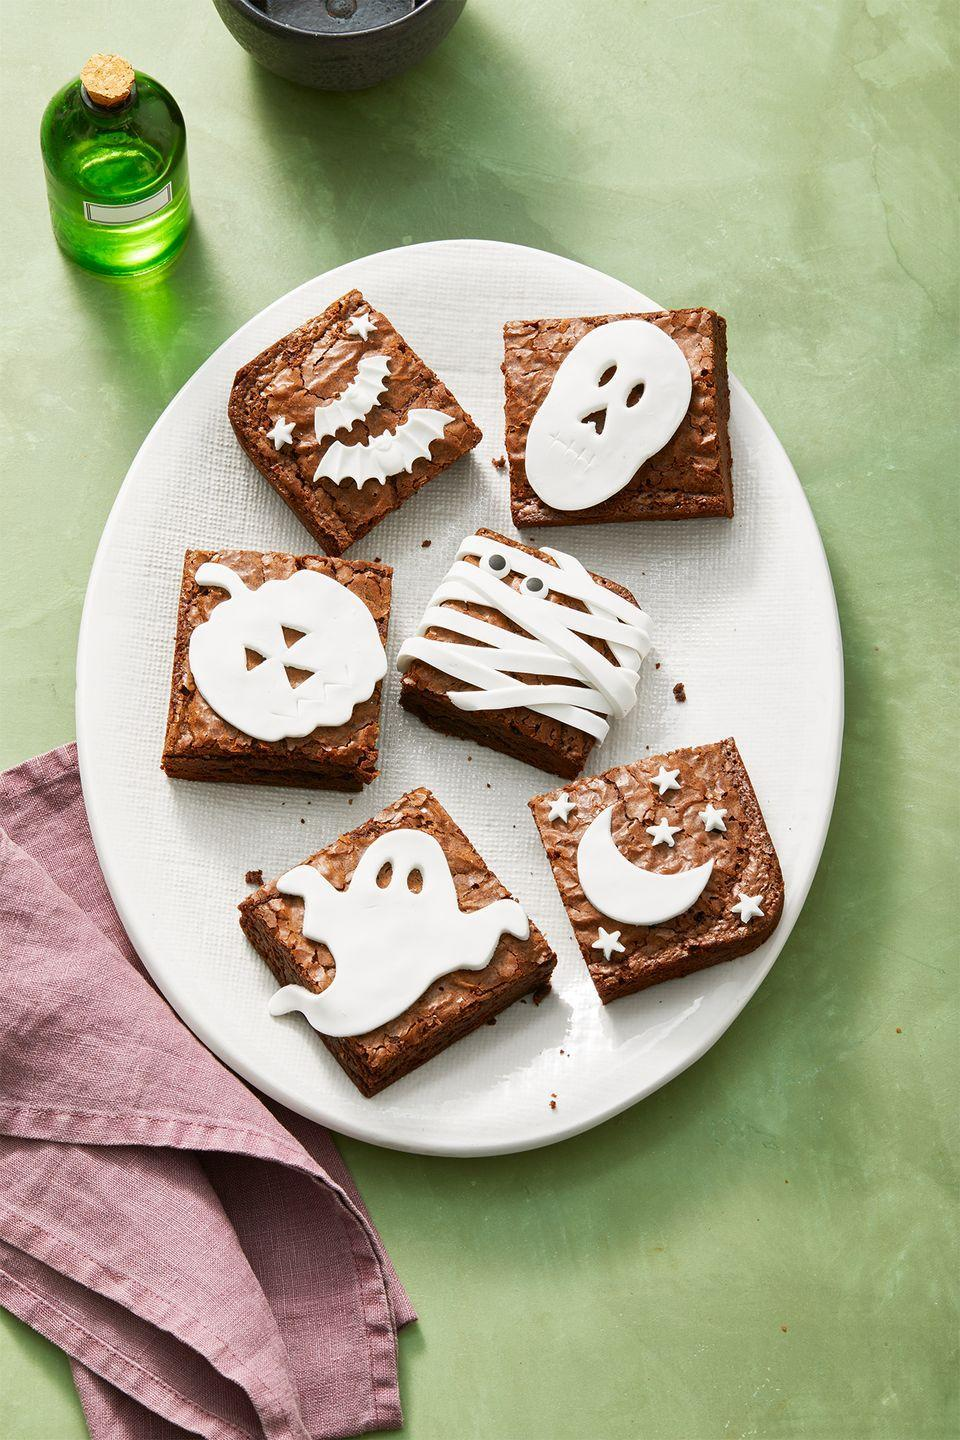 """<p>Need a last-minute dessert for your Halloween party? Decorate brownies (homemade or store-bought!) with cut-out white fondant.</p><p><strong>RELATED: </strong><a href=""""https://www.goodhousekeeping.com/holidays/halloween-ideas/g565/halloween-party-ideas/"""" rel=""""nofollow noopener"""" target=""""_blank"""" data-ylk=""""slk:80 Fun and Creepy Ideas for a Halloween Party to Remember"""" class=""""link rapid-noclick-resp"""">80 Fun and Creepy Ideas for a Halloween Party to Remember</a></p>"""